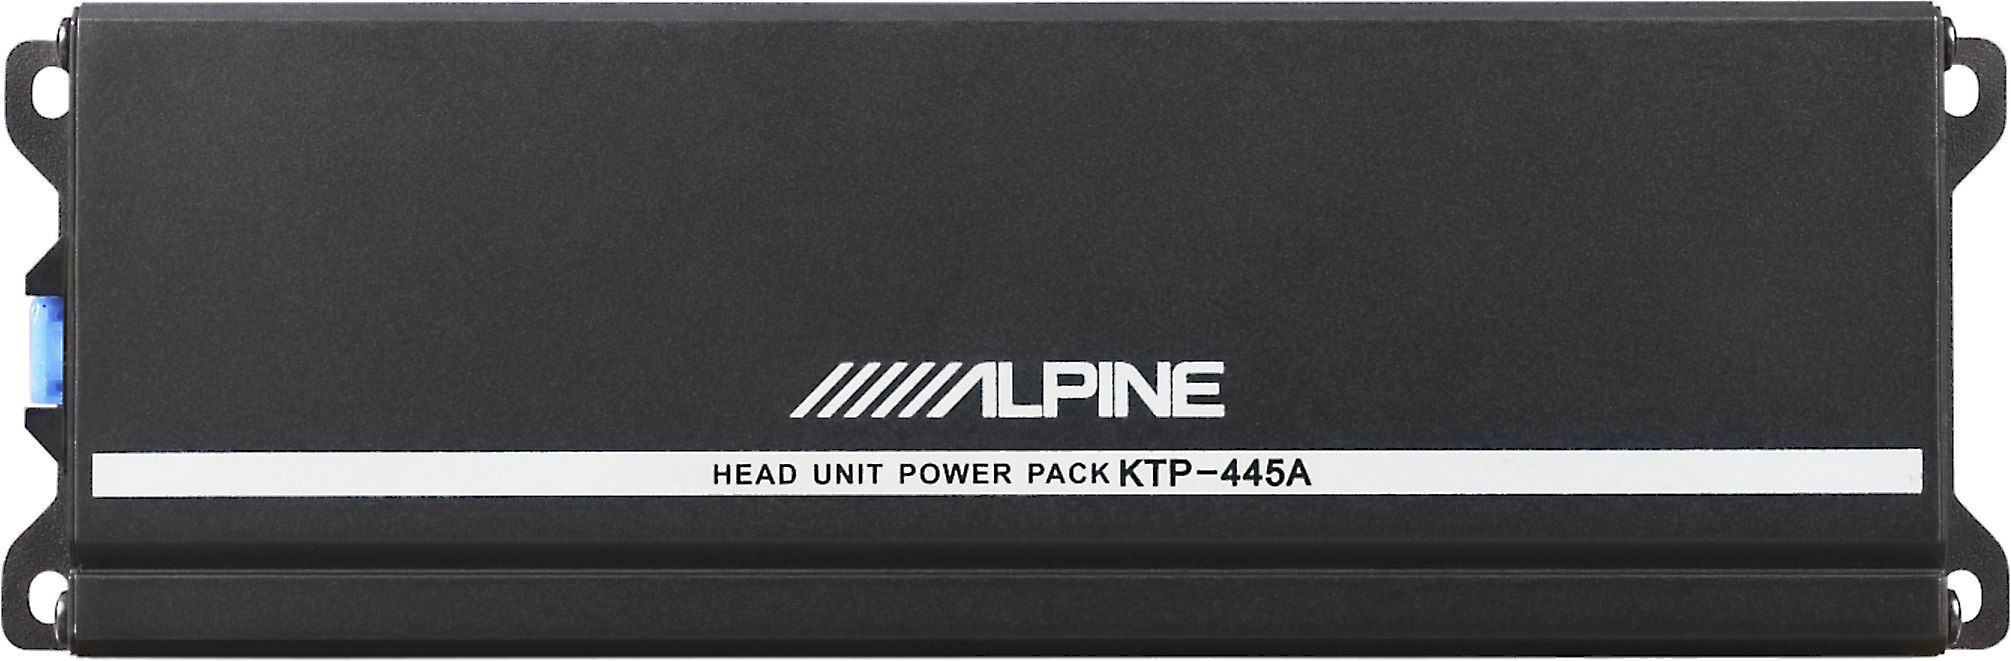 b688746670c Alpine KTP-445A Power Pack Compact upgrade amplifier for your Alpine ...